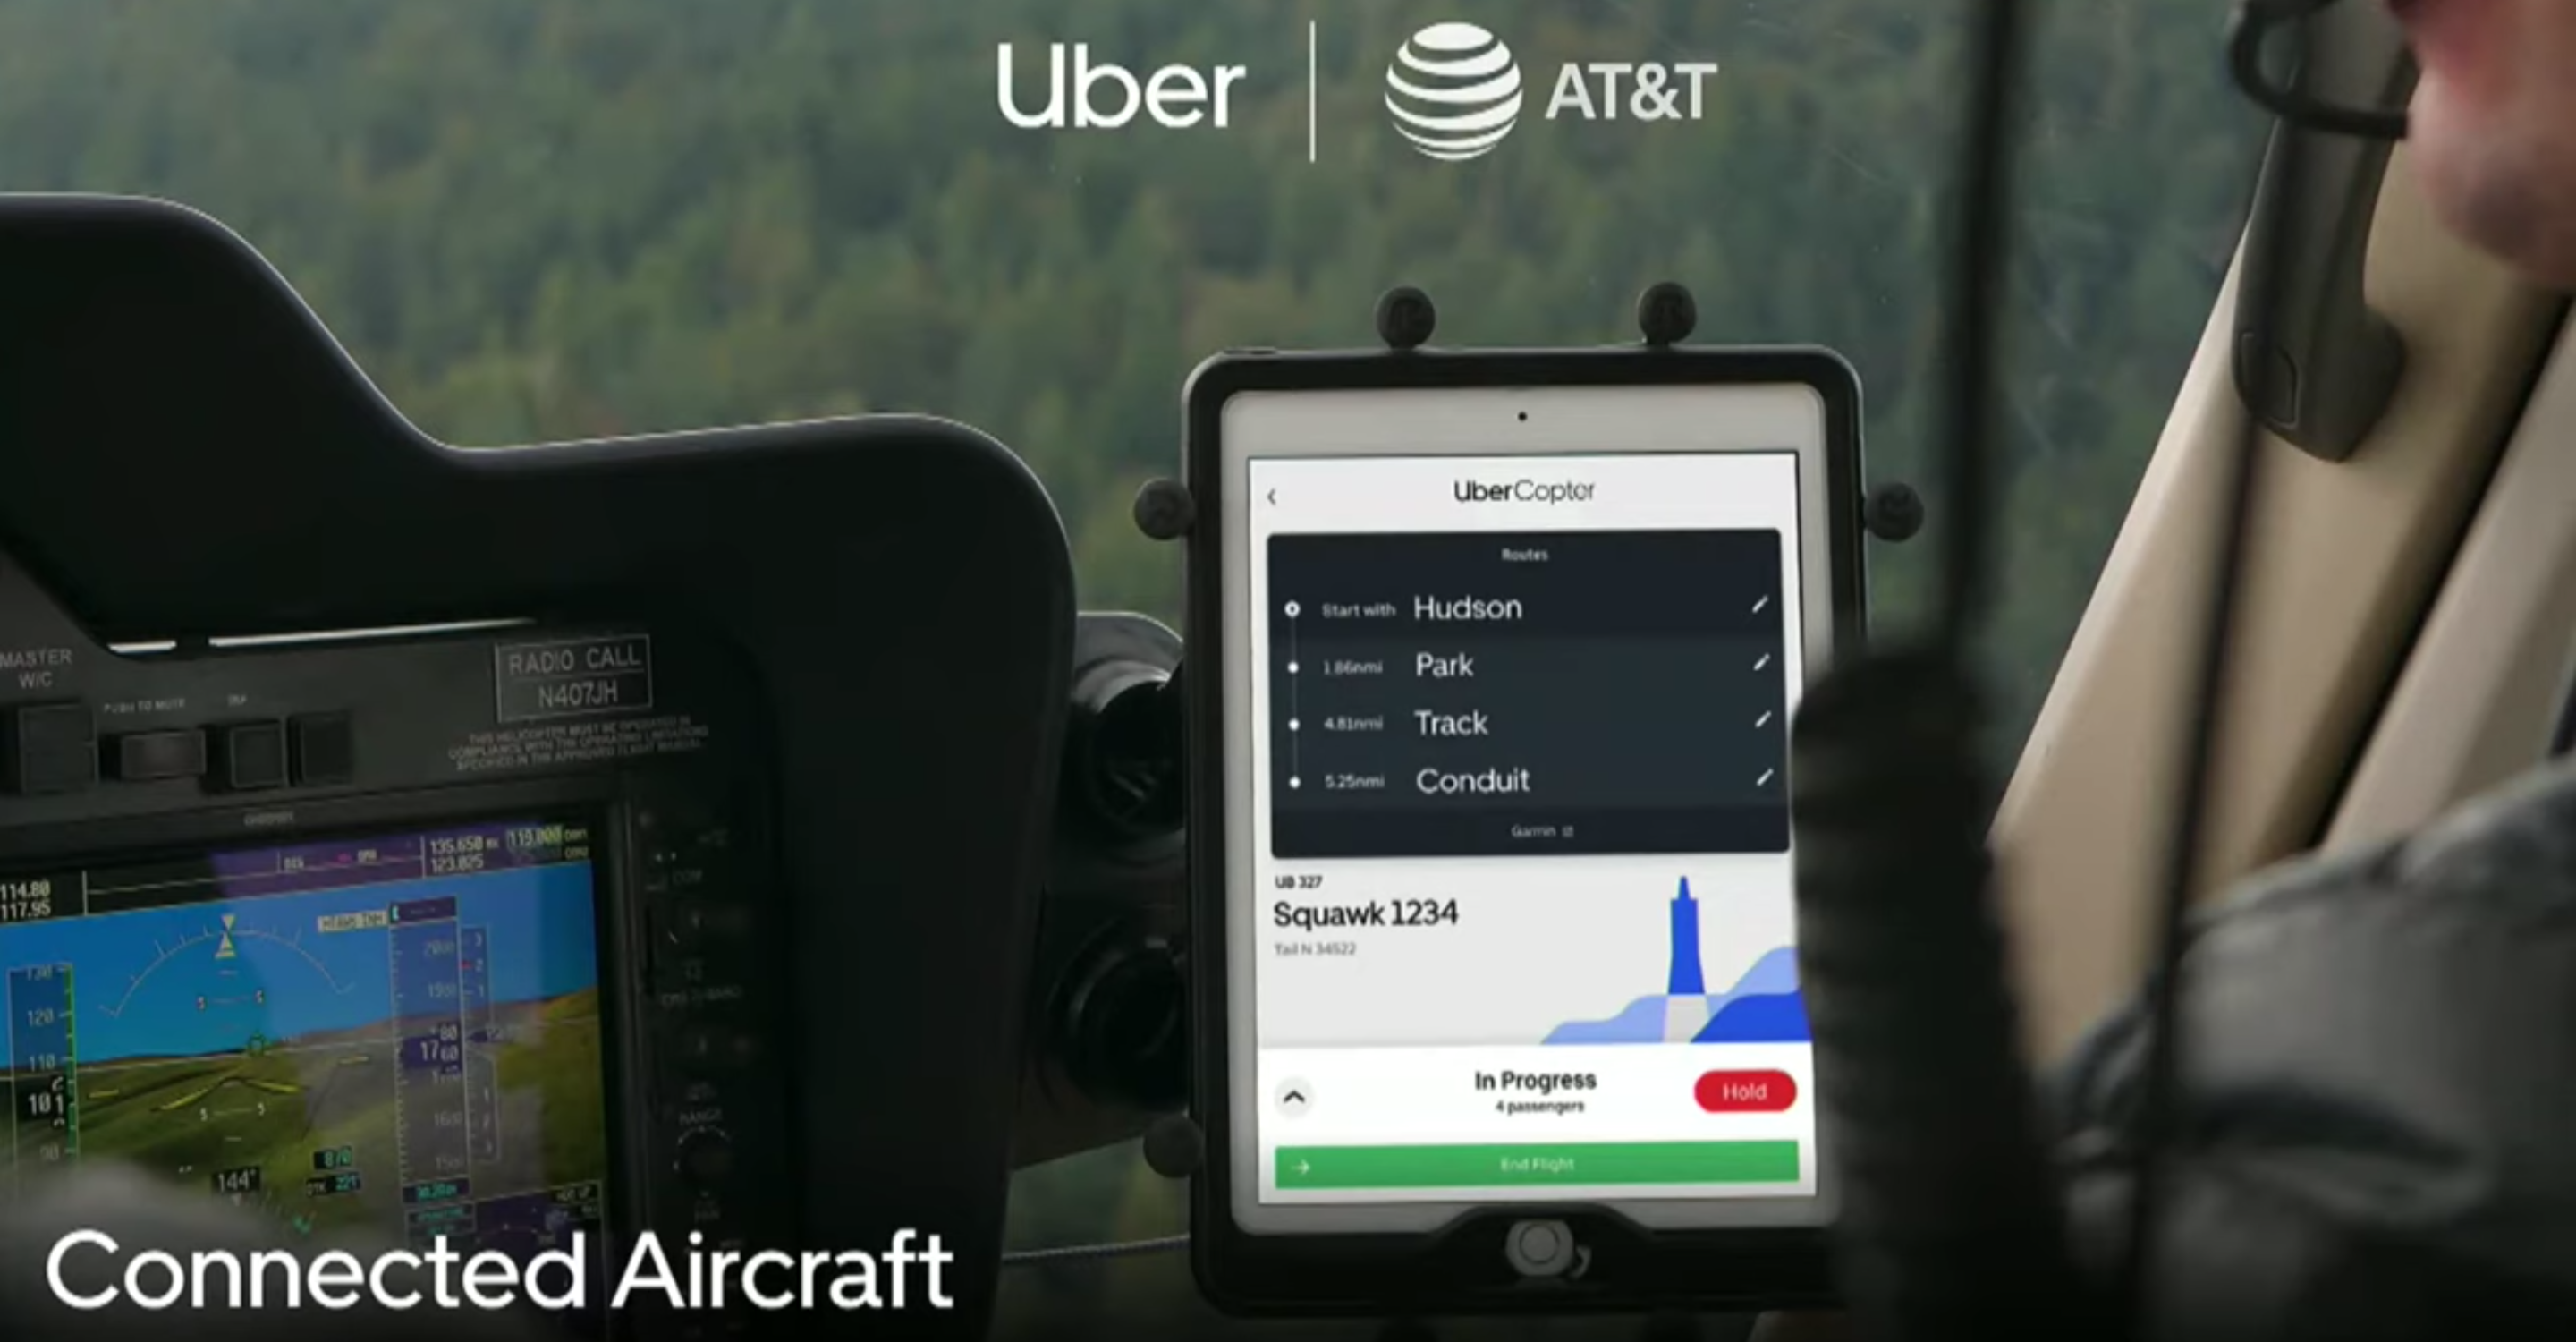 Uber Air and AT&T 5G